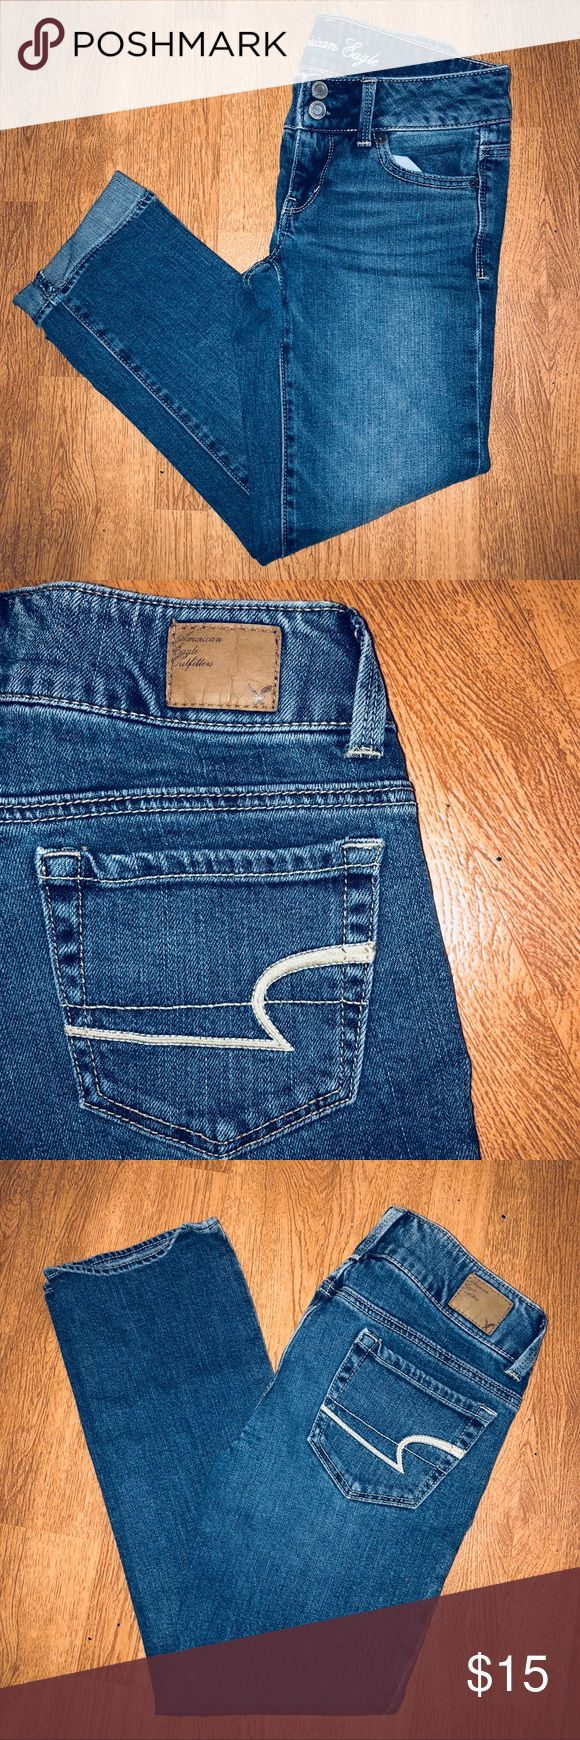 00R American Eagle Outfitters Artist Crop Jeans CONDITION: Excellent Used   BRAND: American Eagle Outfitters AEO AE  SIZE: 00 REGULAR   DETAILS: Women's/Ladies, 00 REGULAR CROP Artist stretch Denim jeans. Medium wash . 98% cotton 2% Spandex .   FLAWS:  * Fading from washing    #Jeans #AthensOH #forsale  #Fashion #Style #TopShopStyles   @CksClosetOverload  Item No. 3 American Eagle Outfitters Jeans Ankle & Cropped